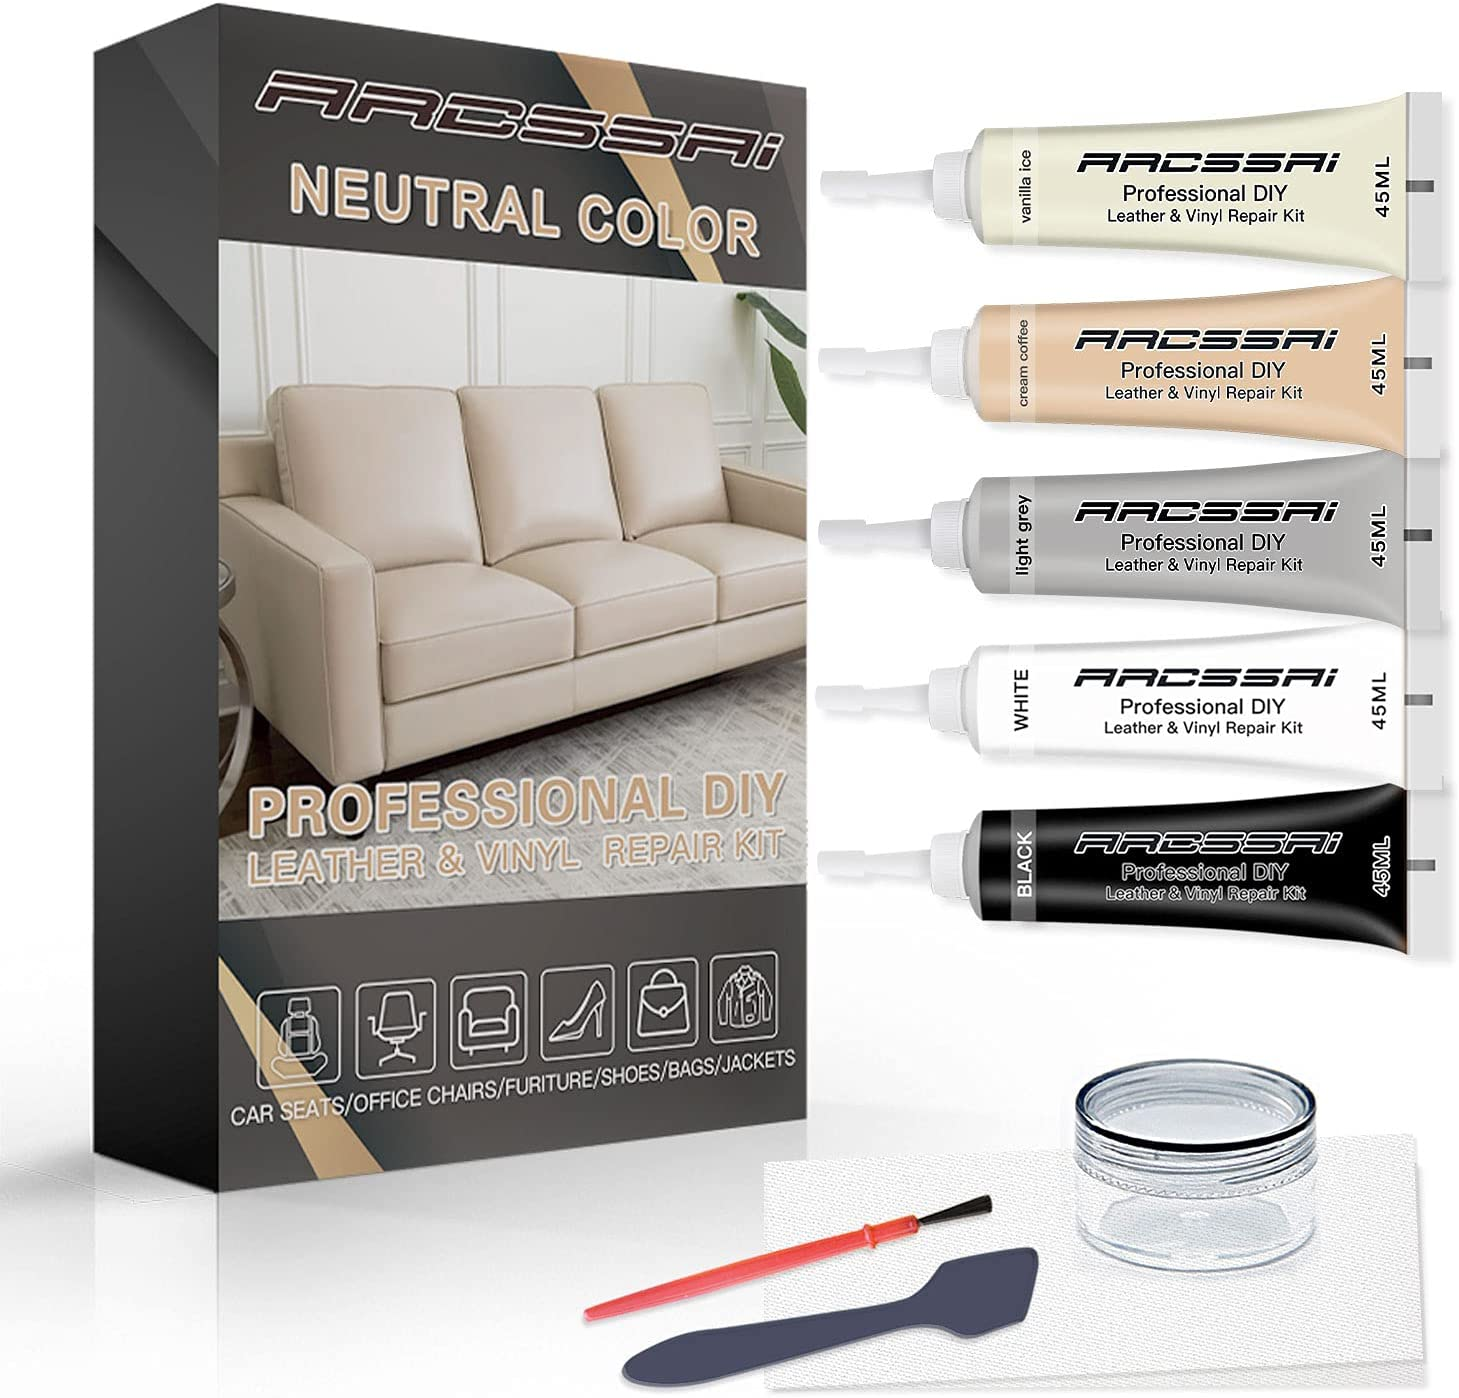 Bargain sale Neutral Color Vinyl and Leather Repair Award Leat Couches for Kit PU